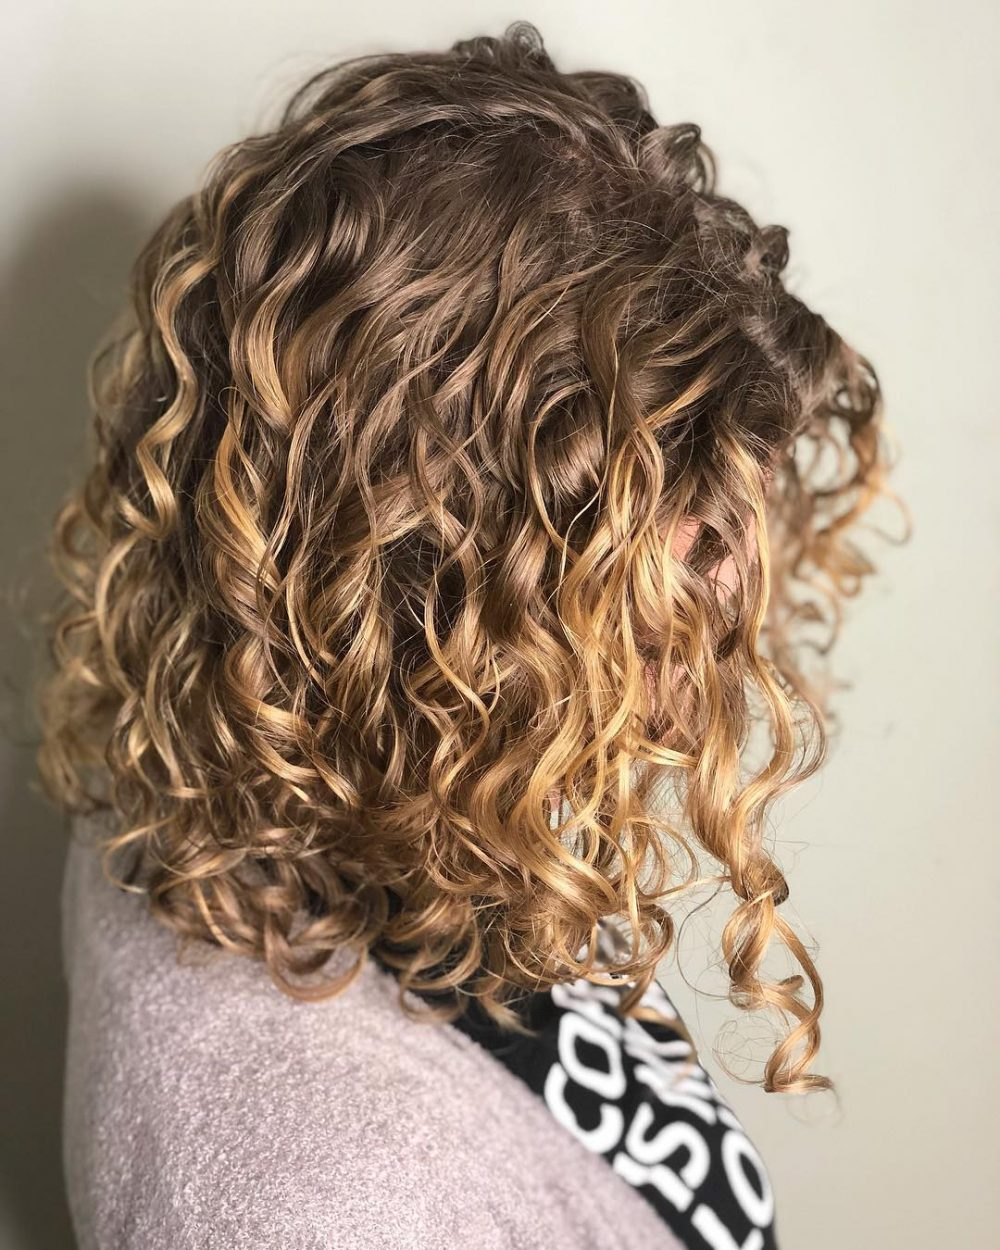 Sunkissed Waves hairstyle